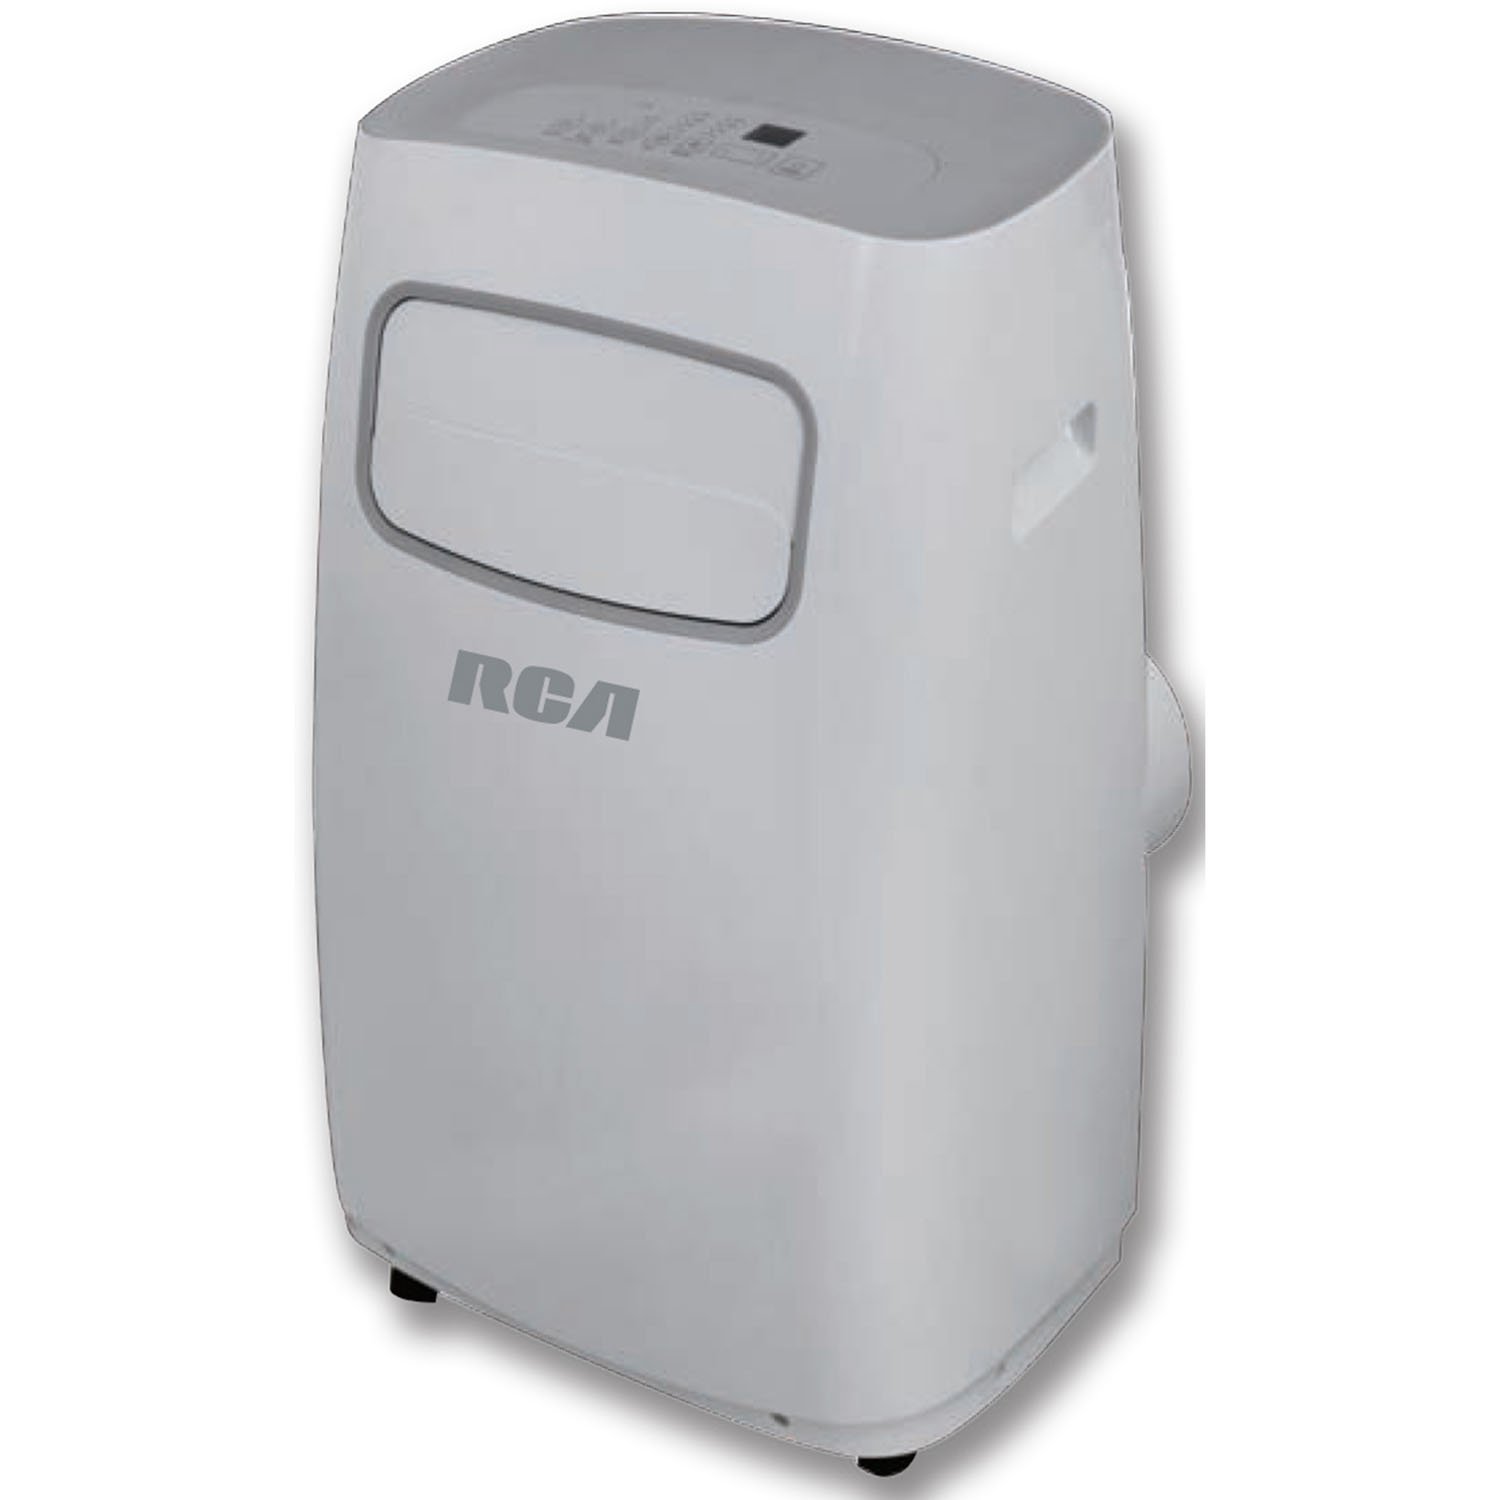 Rca 3 In 1 Portable 8 000 Btu Air Conditioner With Remote